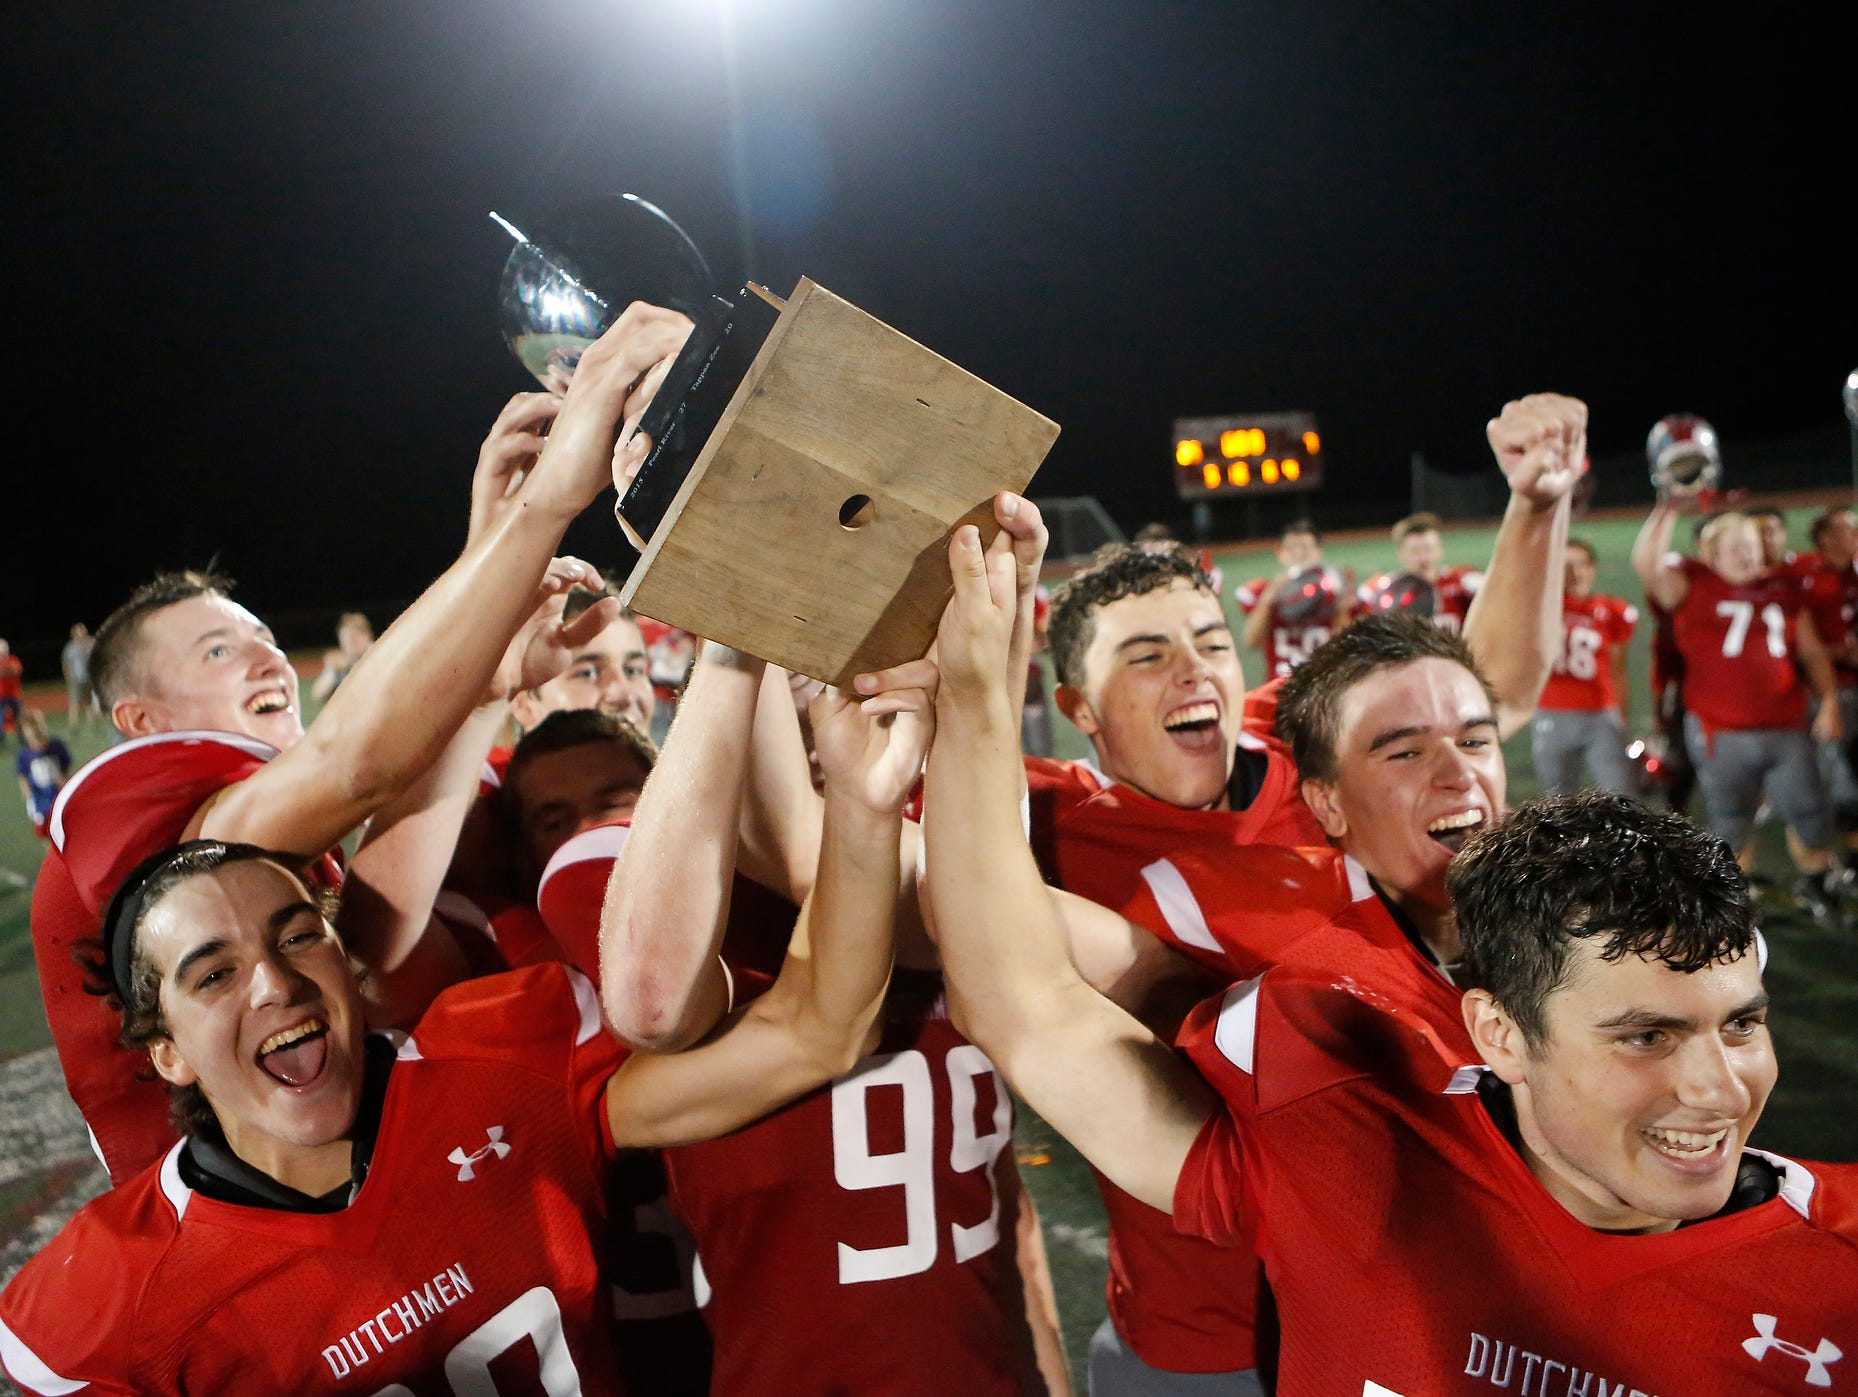 Tappan Zee players hoist the Orange Bowl trophy after their 25-7 win over Pearl River at Tappan Zee High School in Orangeburg on Friday, September 23, 2016.